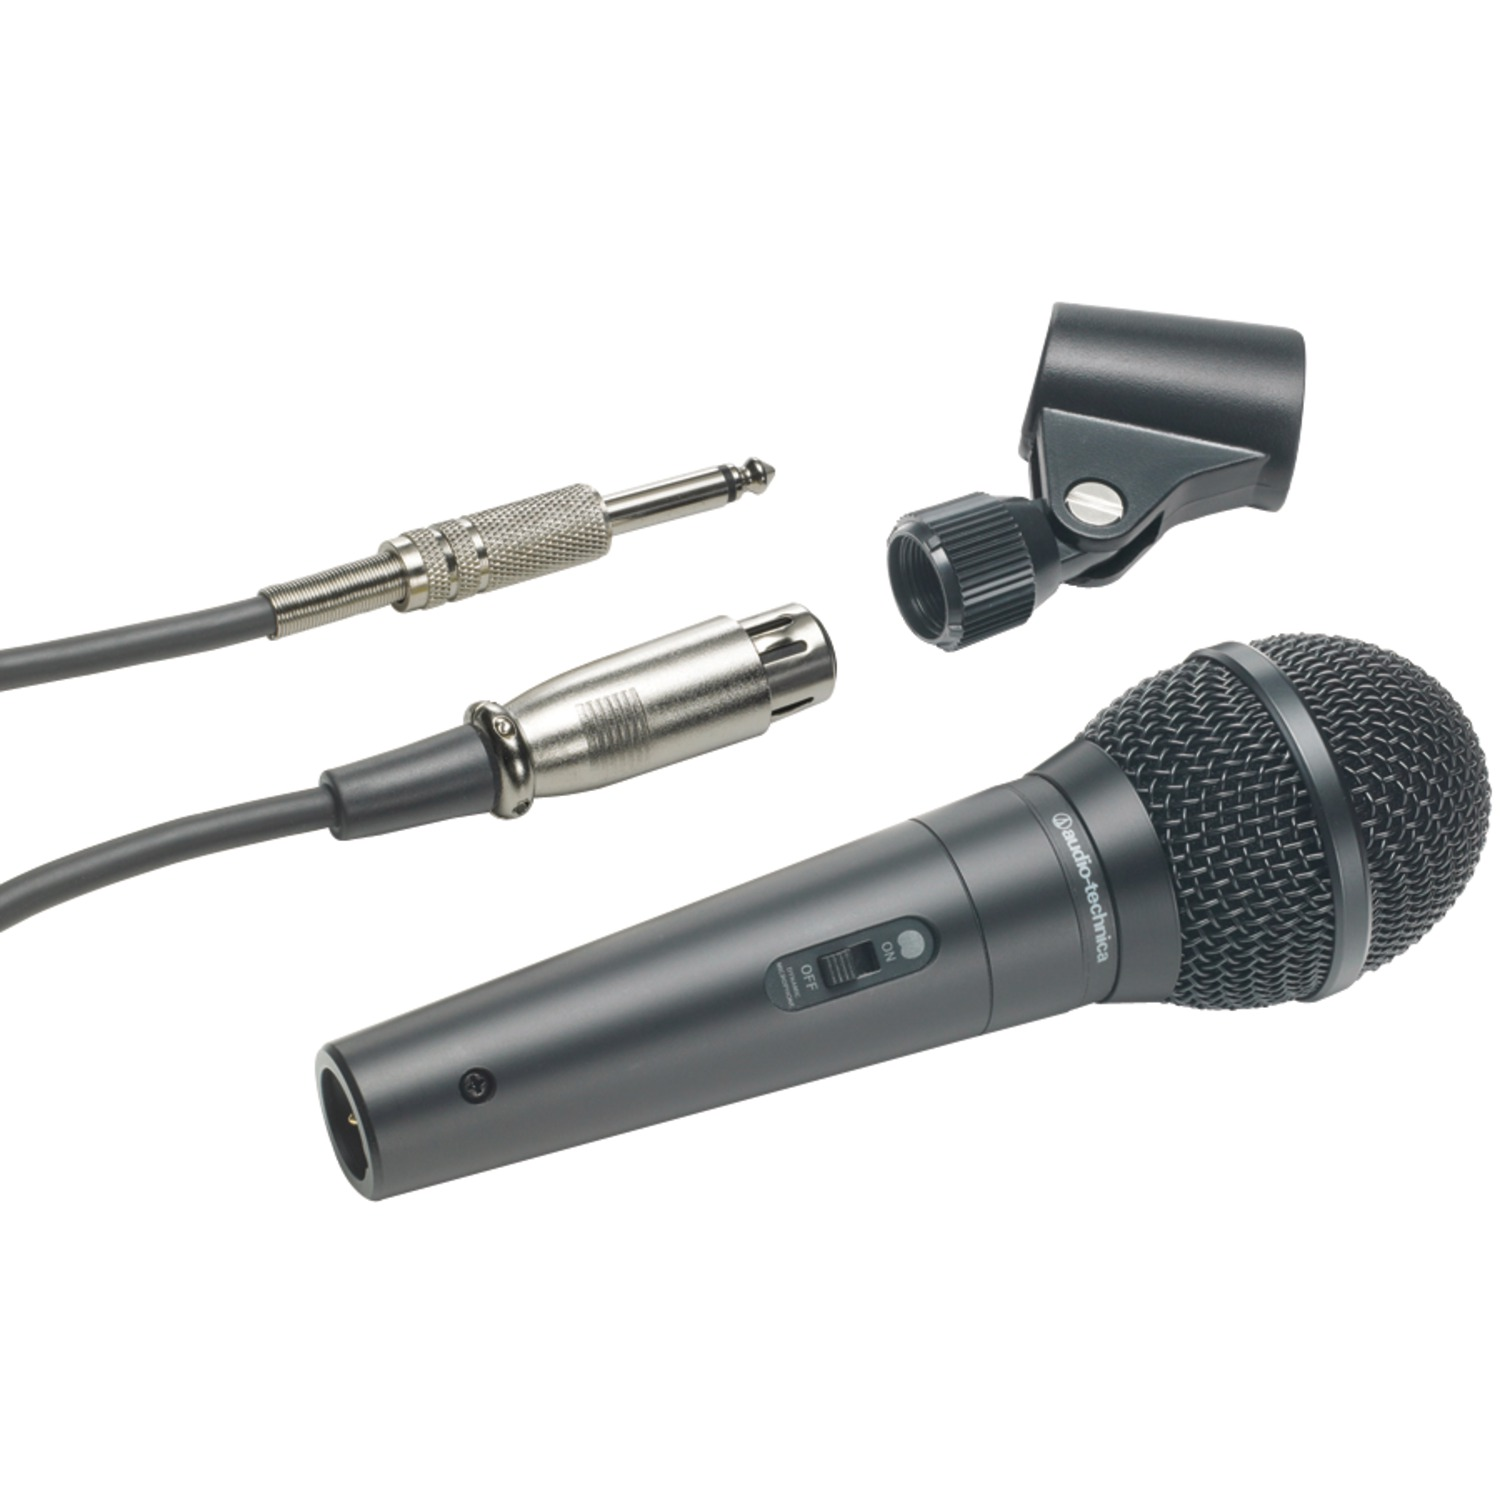 Audio-Technica ATR-1300 ATR Series Dynamic Vocal Instrument Microphone (Unidirectional,... by Audio-Technica